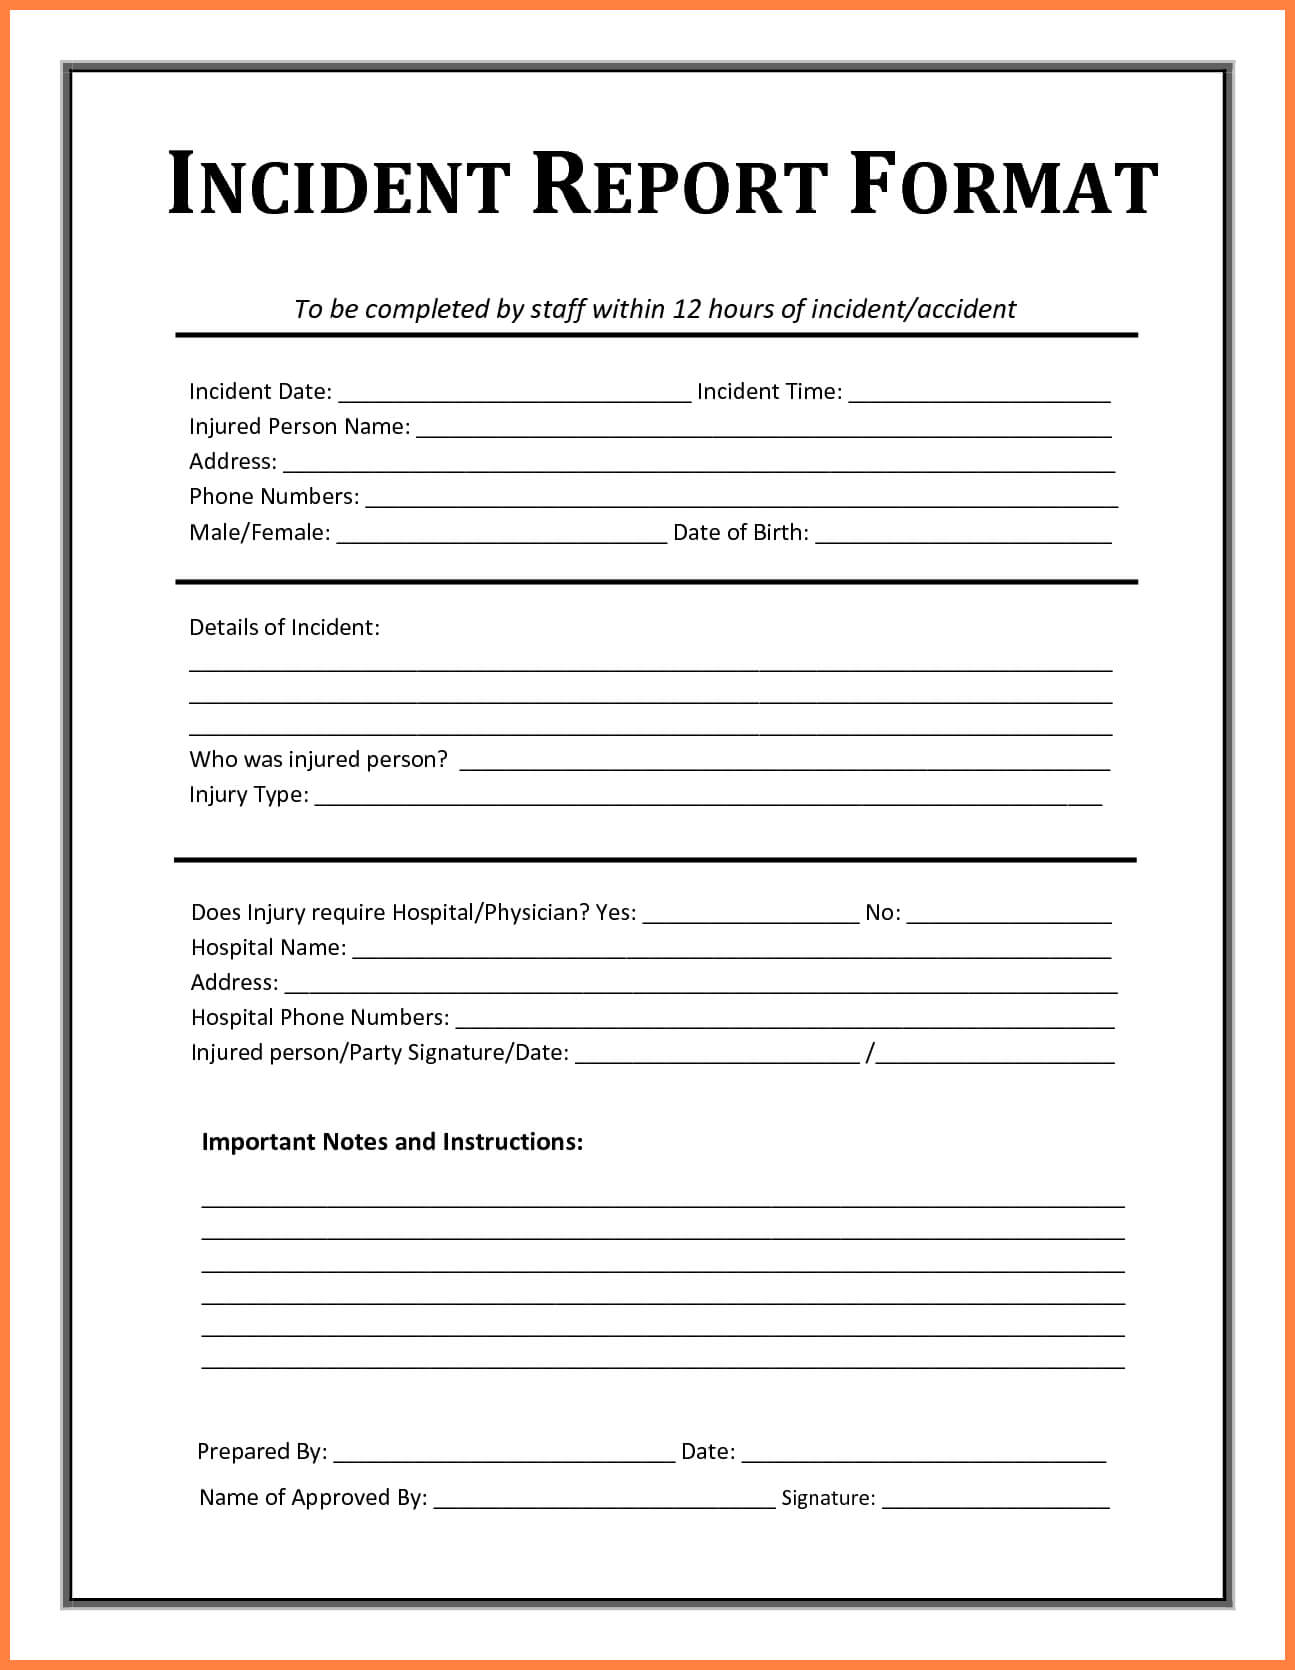 Incident Report Template - Free Incident Report Templates Pertaining To Itil Incident Report Form Template